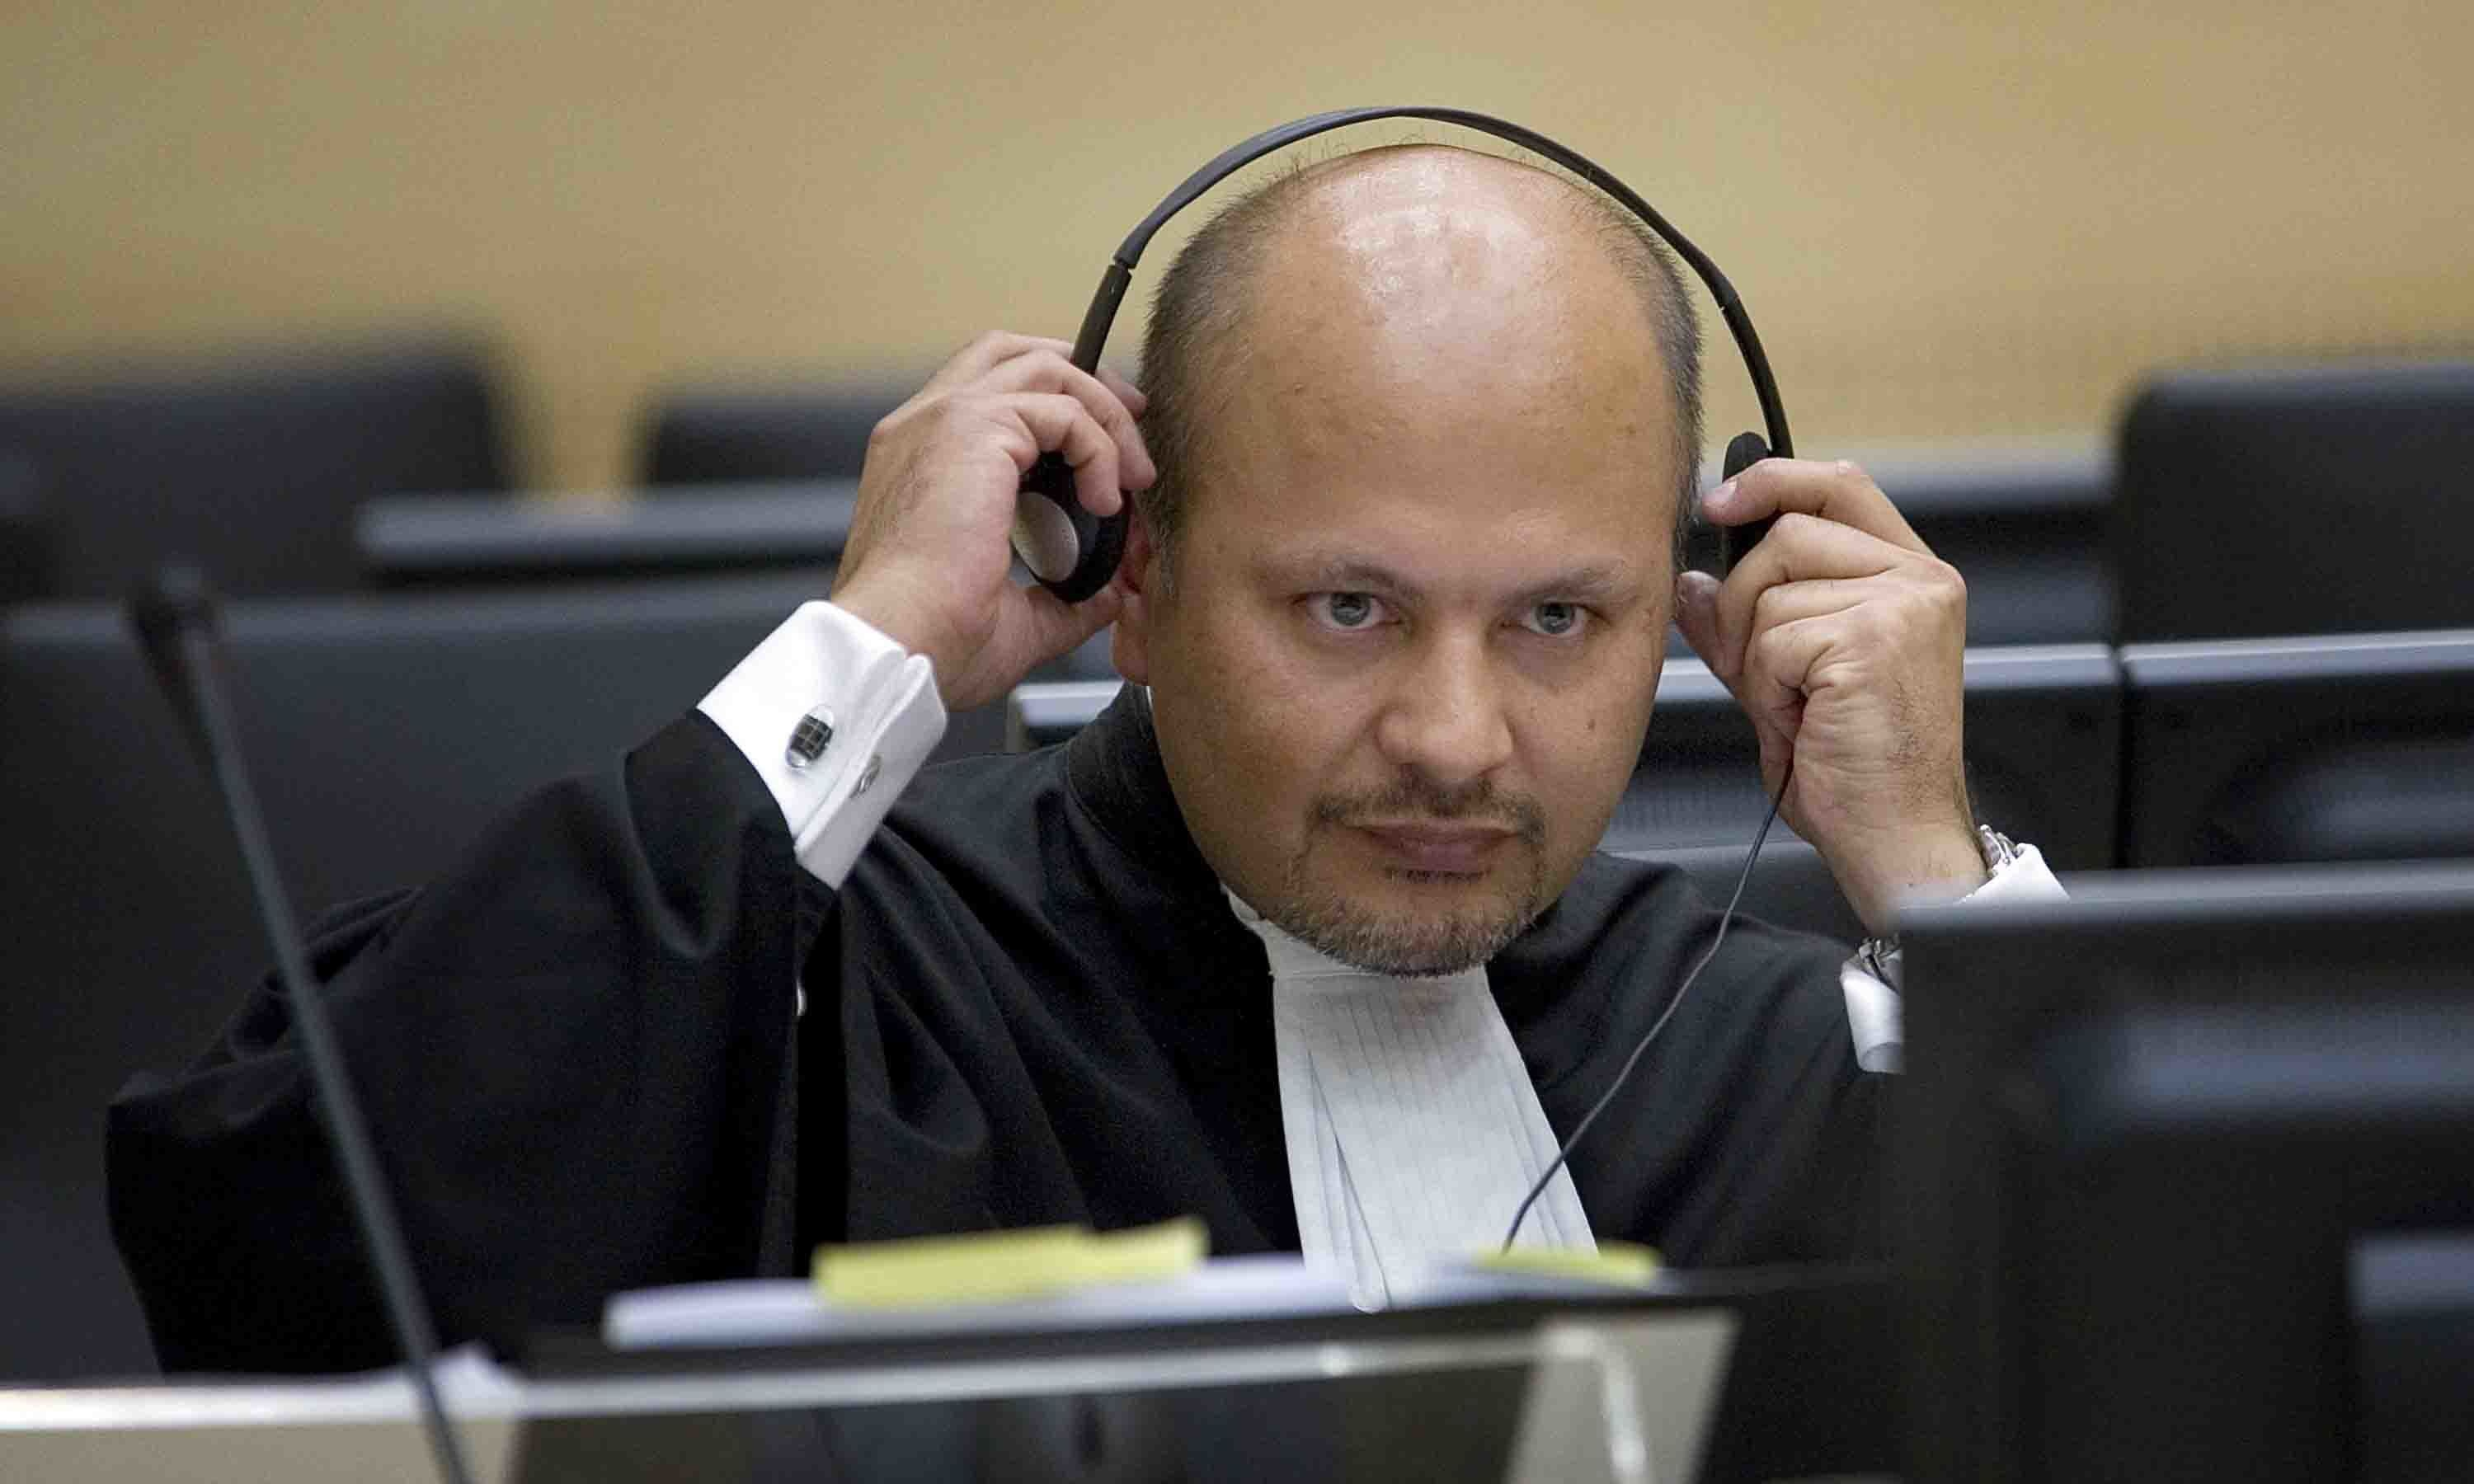 In this file photo, lawyer Karim Khan adjust his headphones in the courtroom of the Special Court for Sierra Leone in The Hague, the Netherlands. — AP